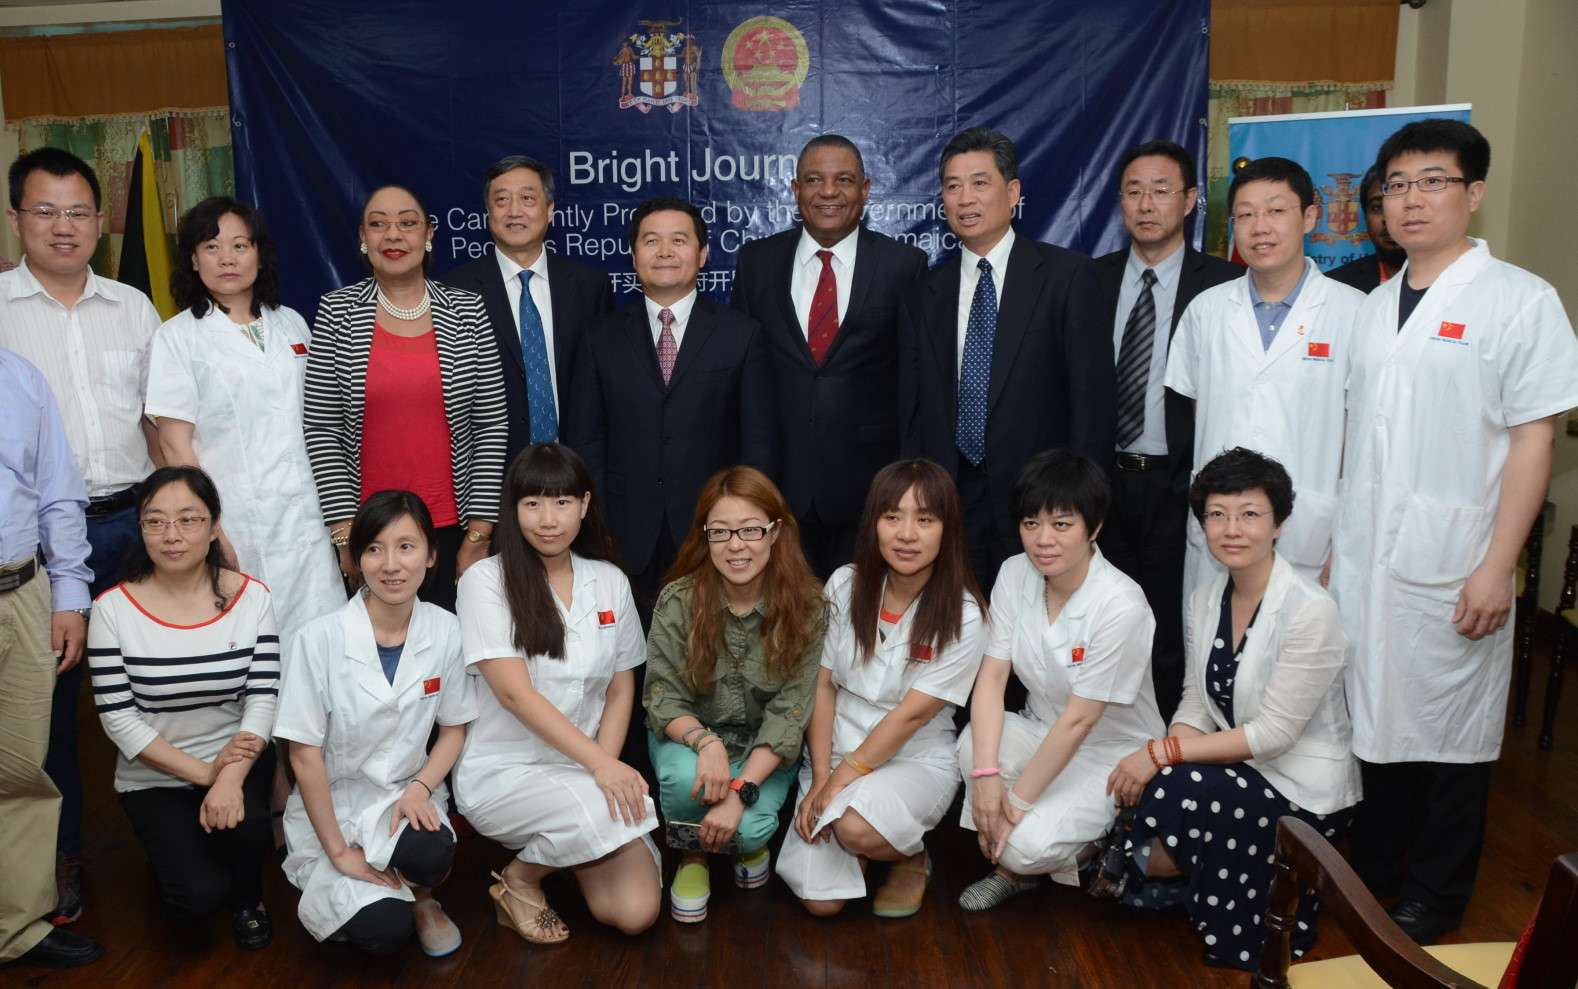 Audio: Chinese Medical Mission Restores Full Sight of 25 J'cans